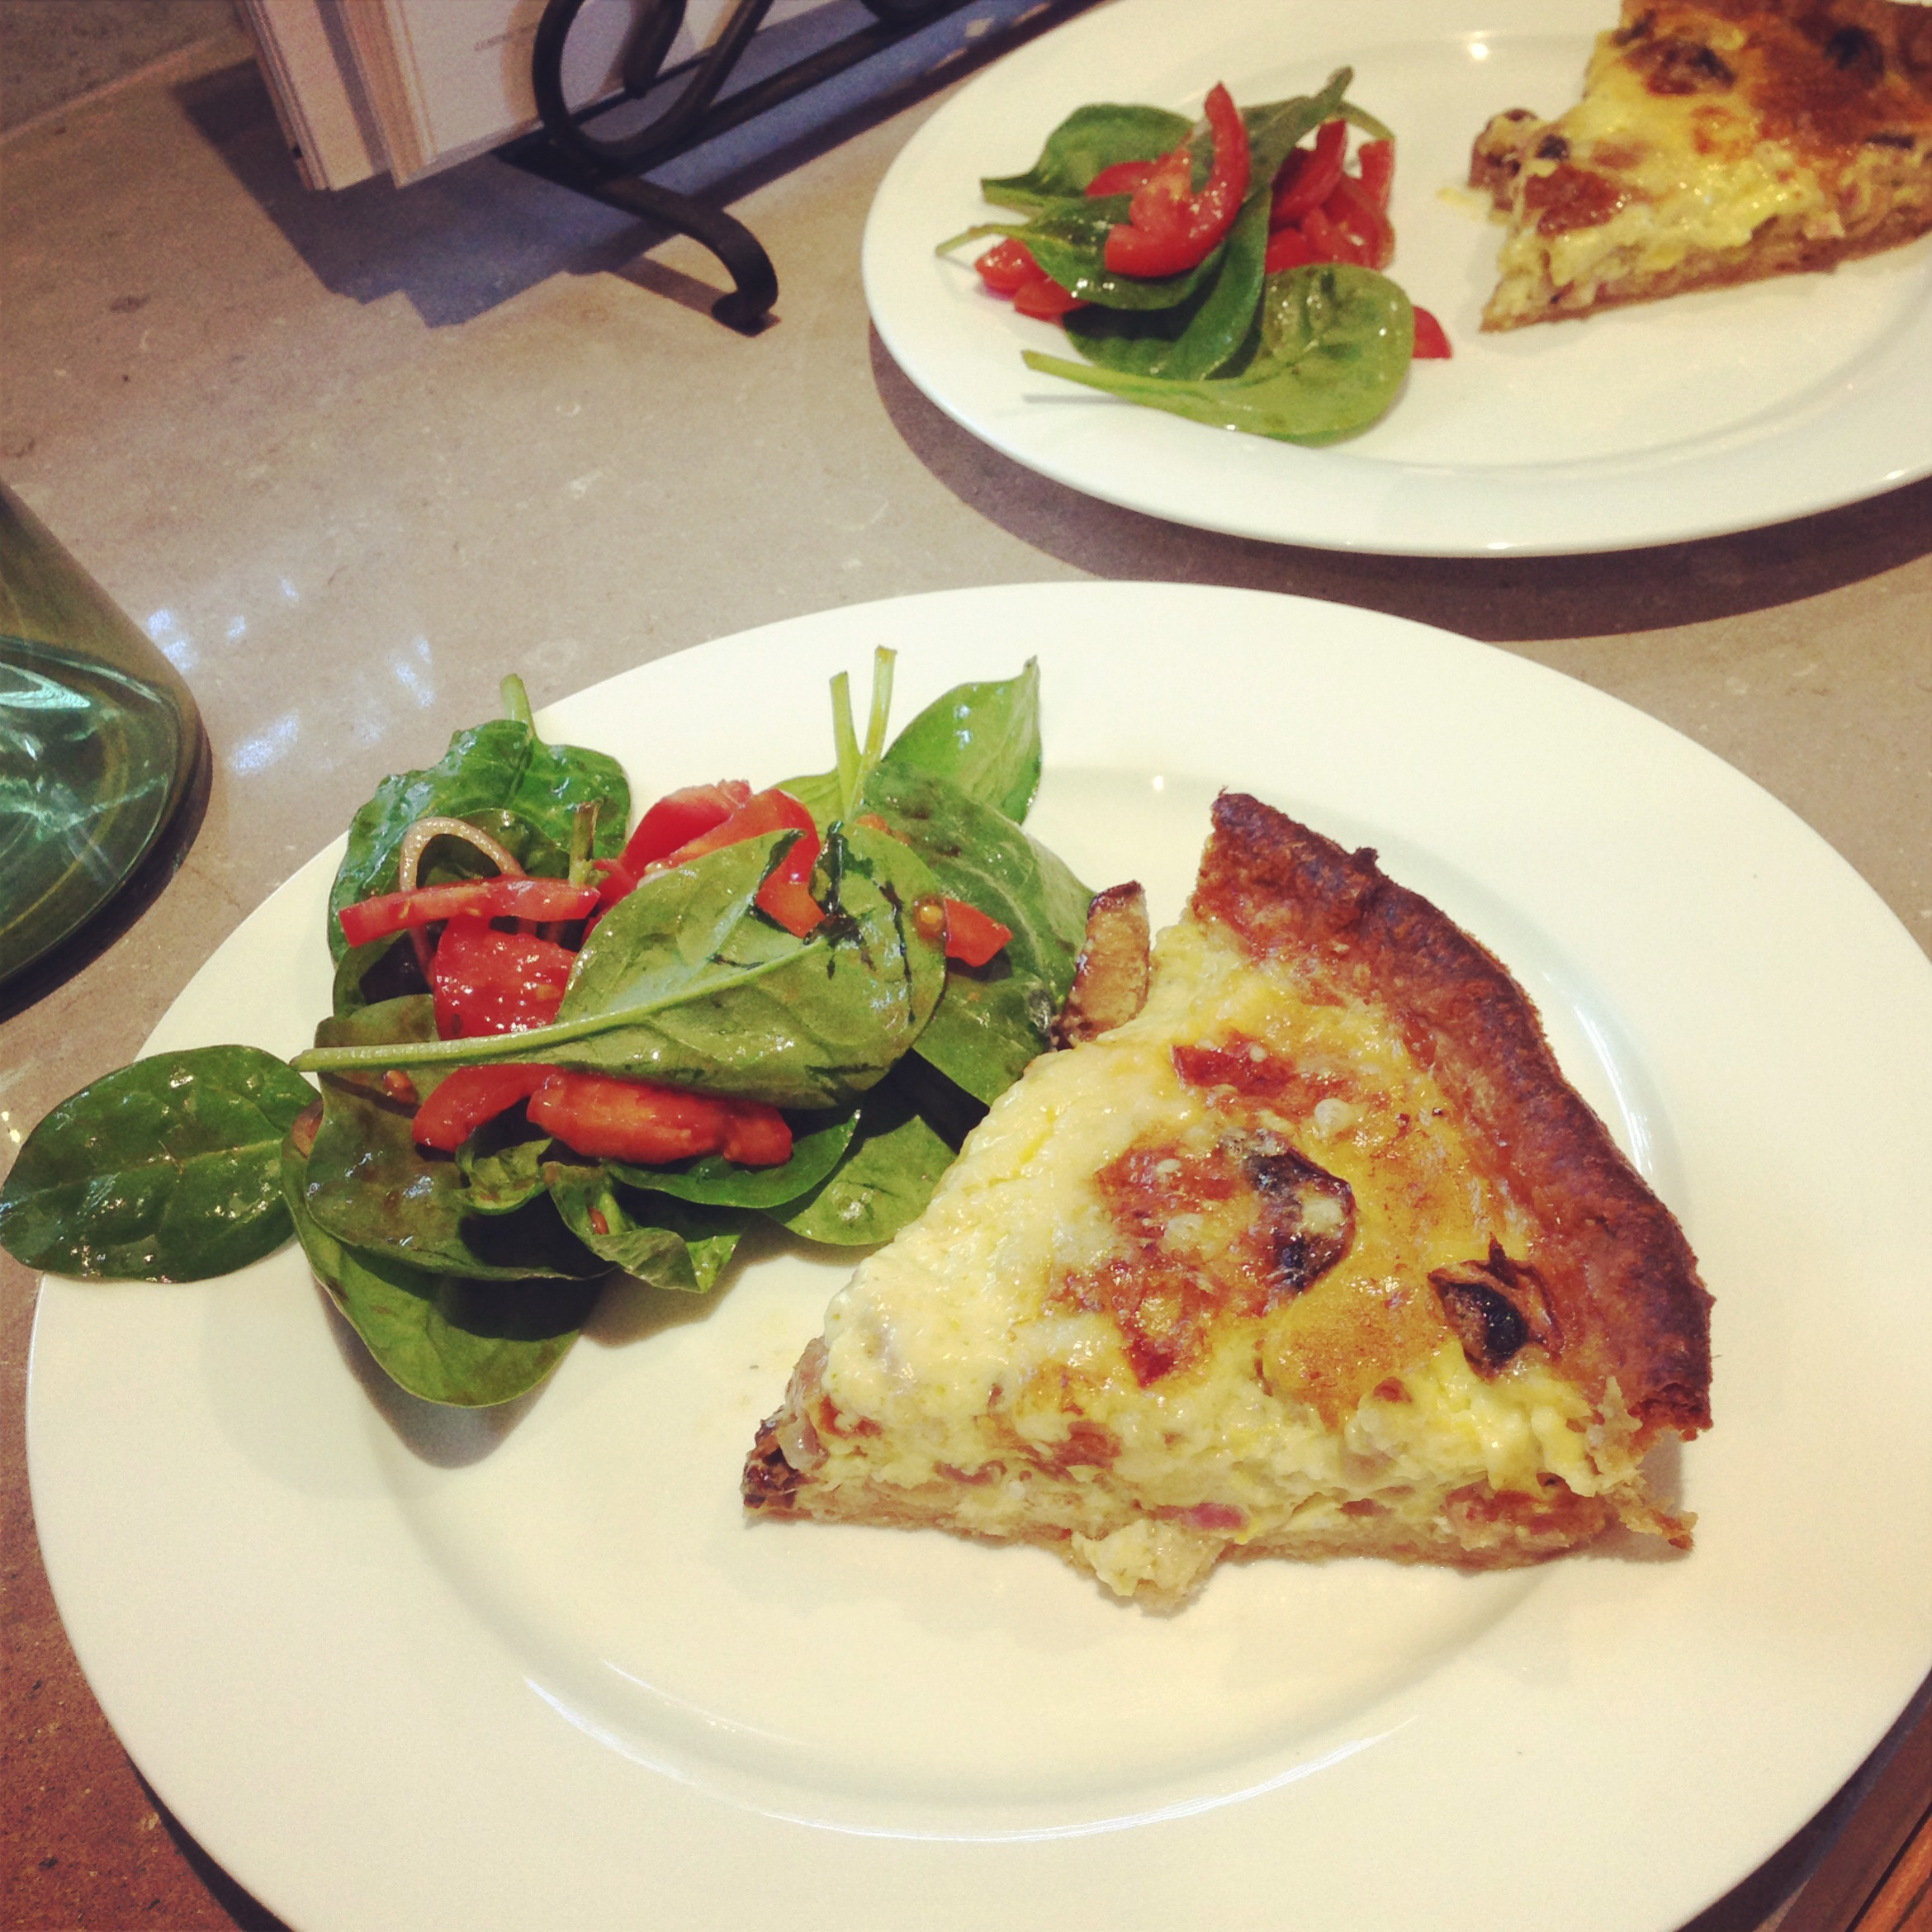 Weekend baking – quiche Lorraine